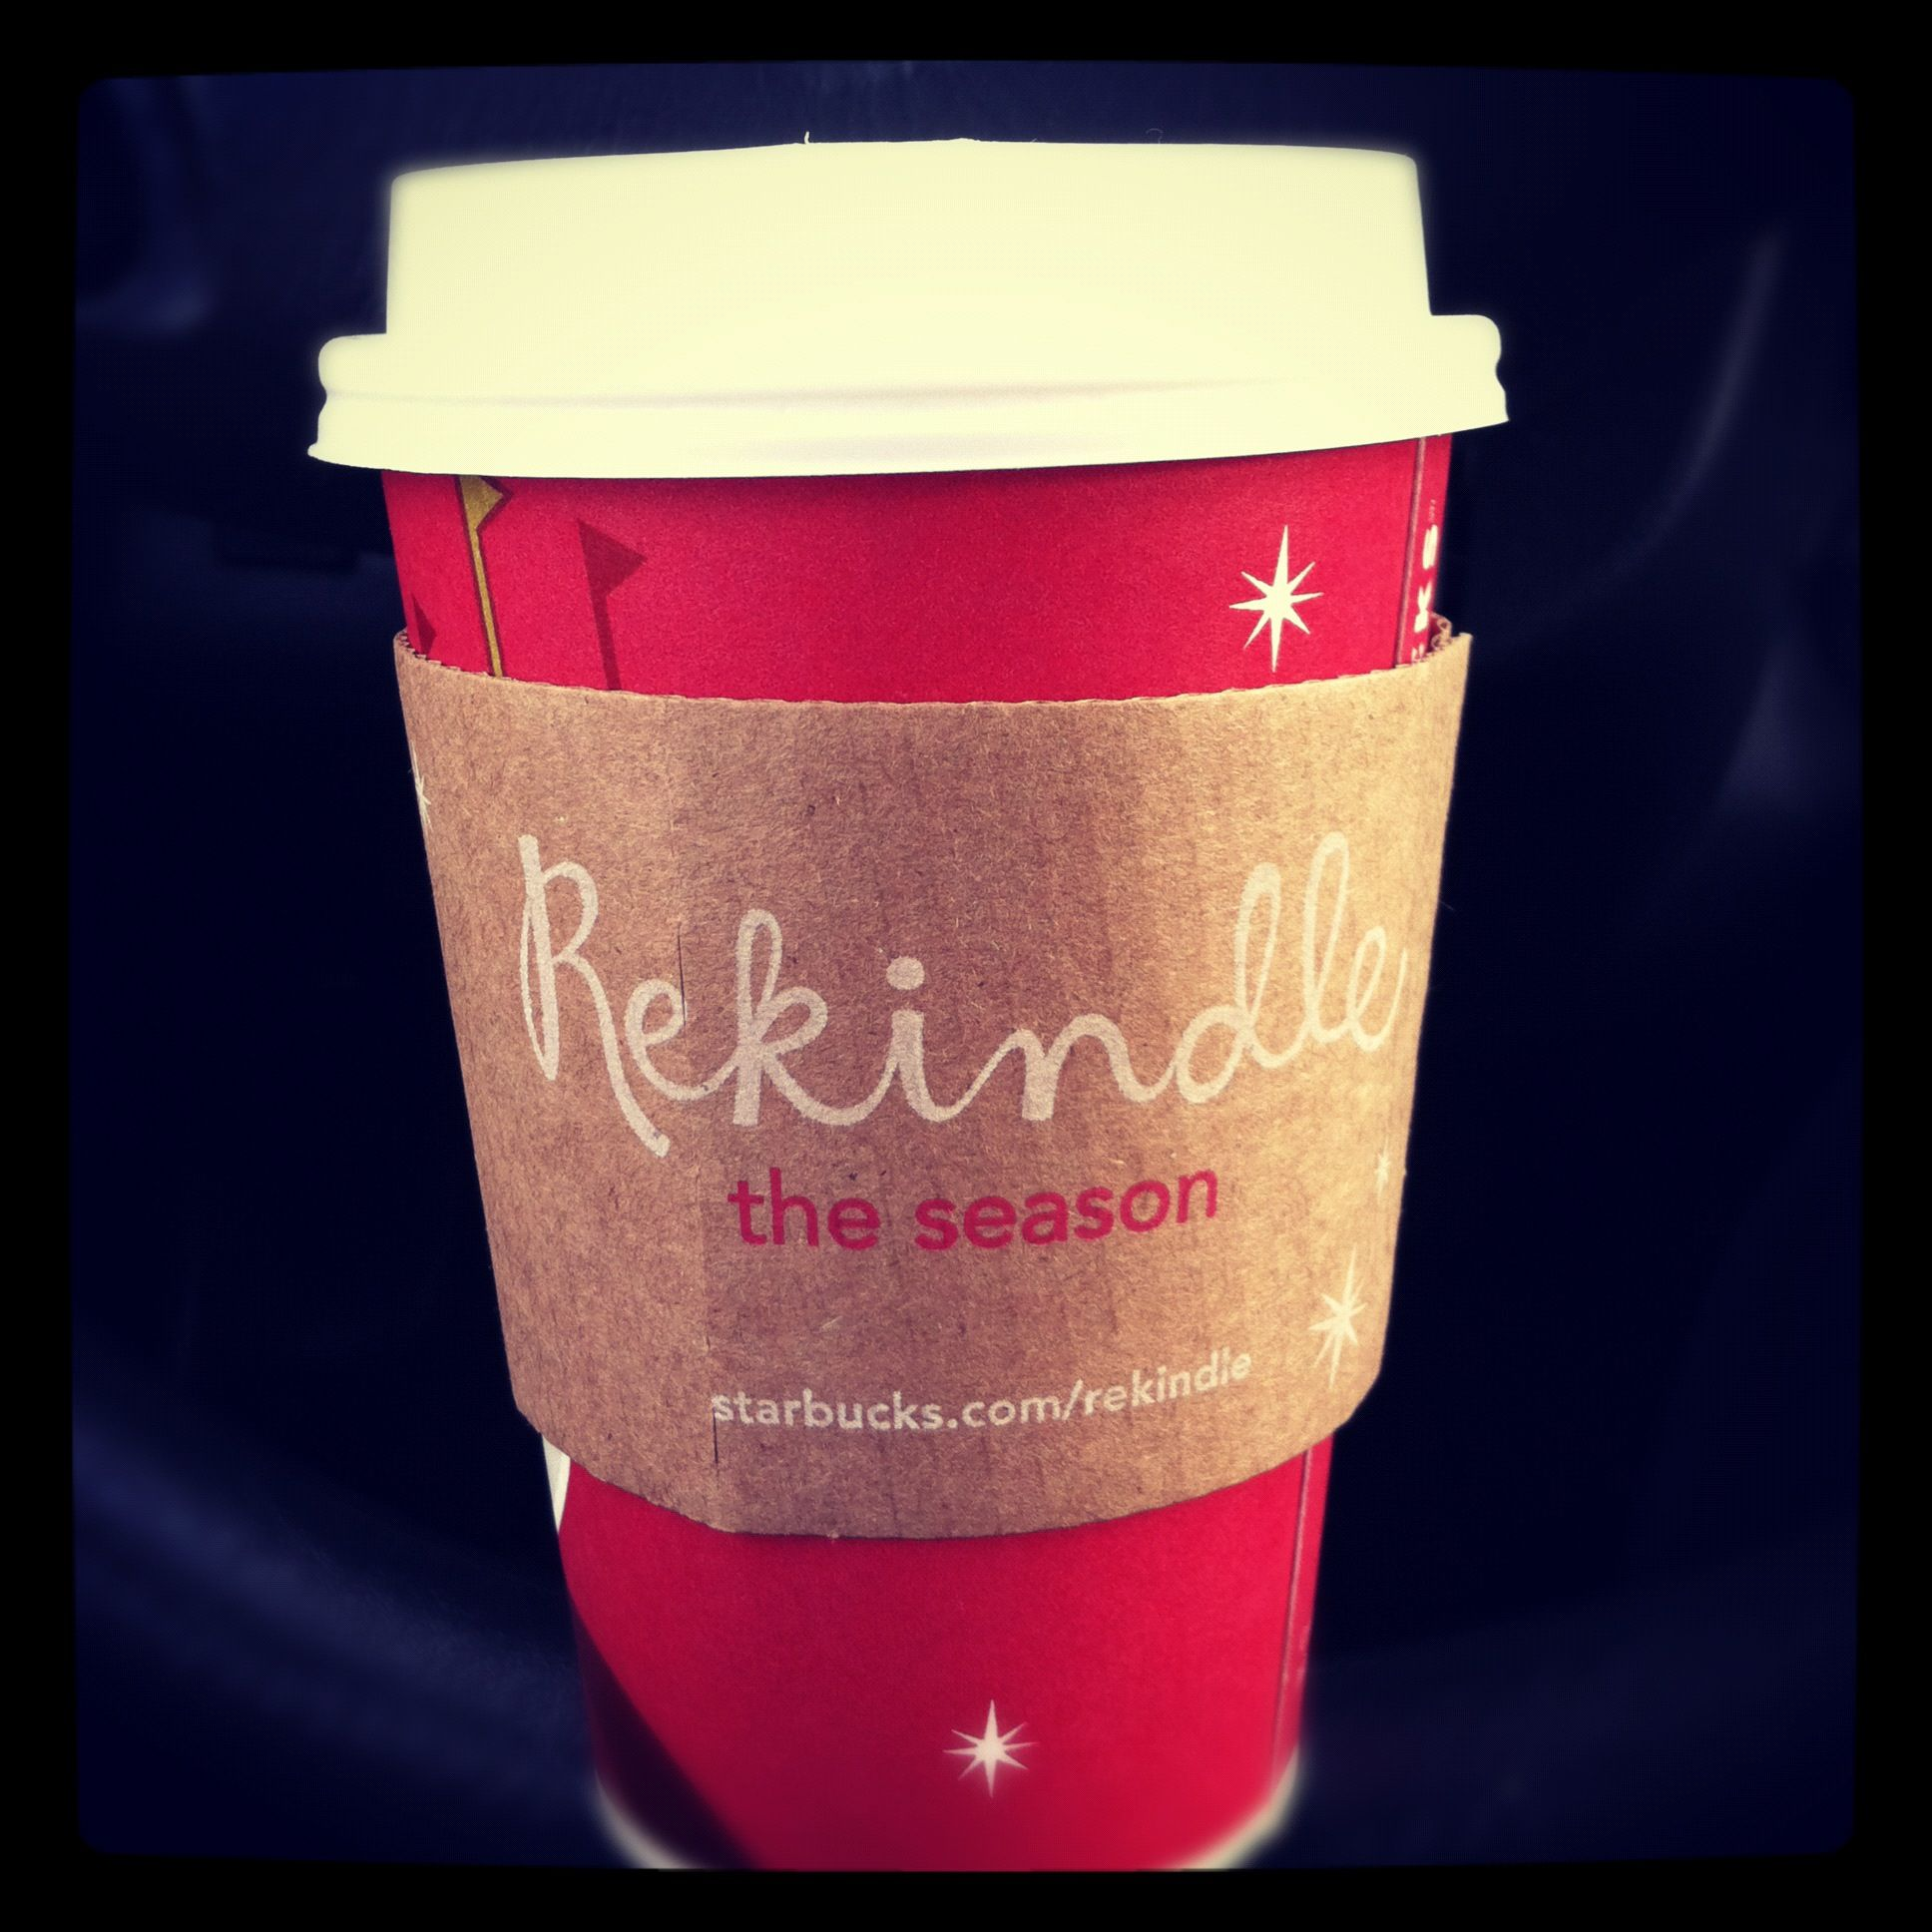 'Tis the season! What is your favorite holiday drink from Starbucks?! Comment below and let us know!!!